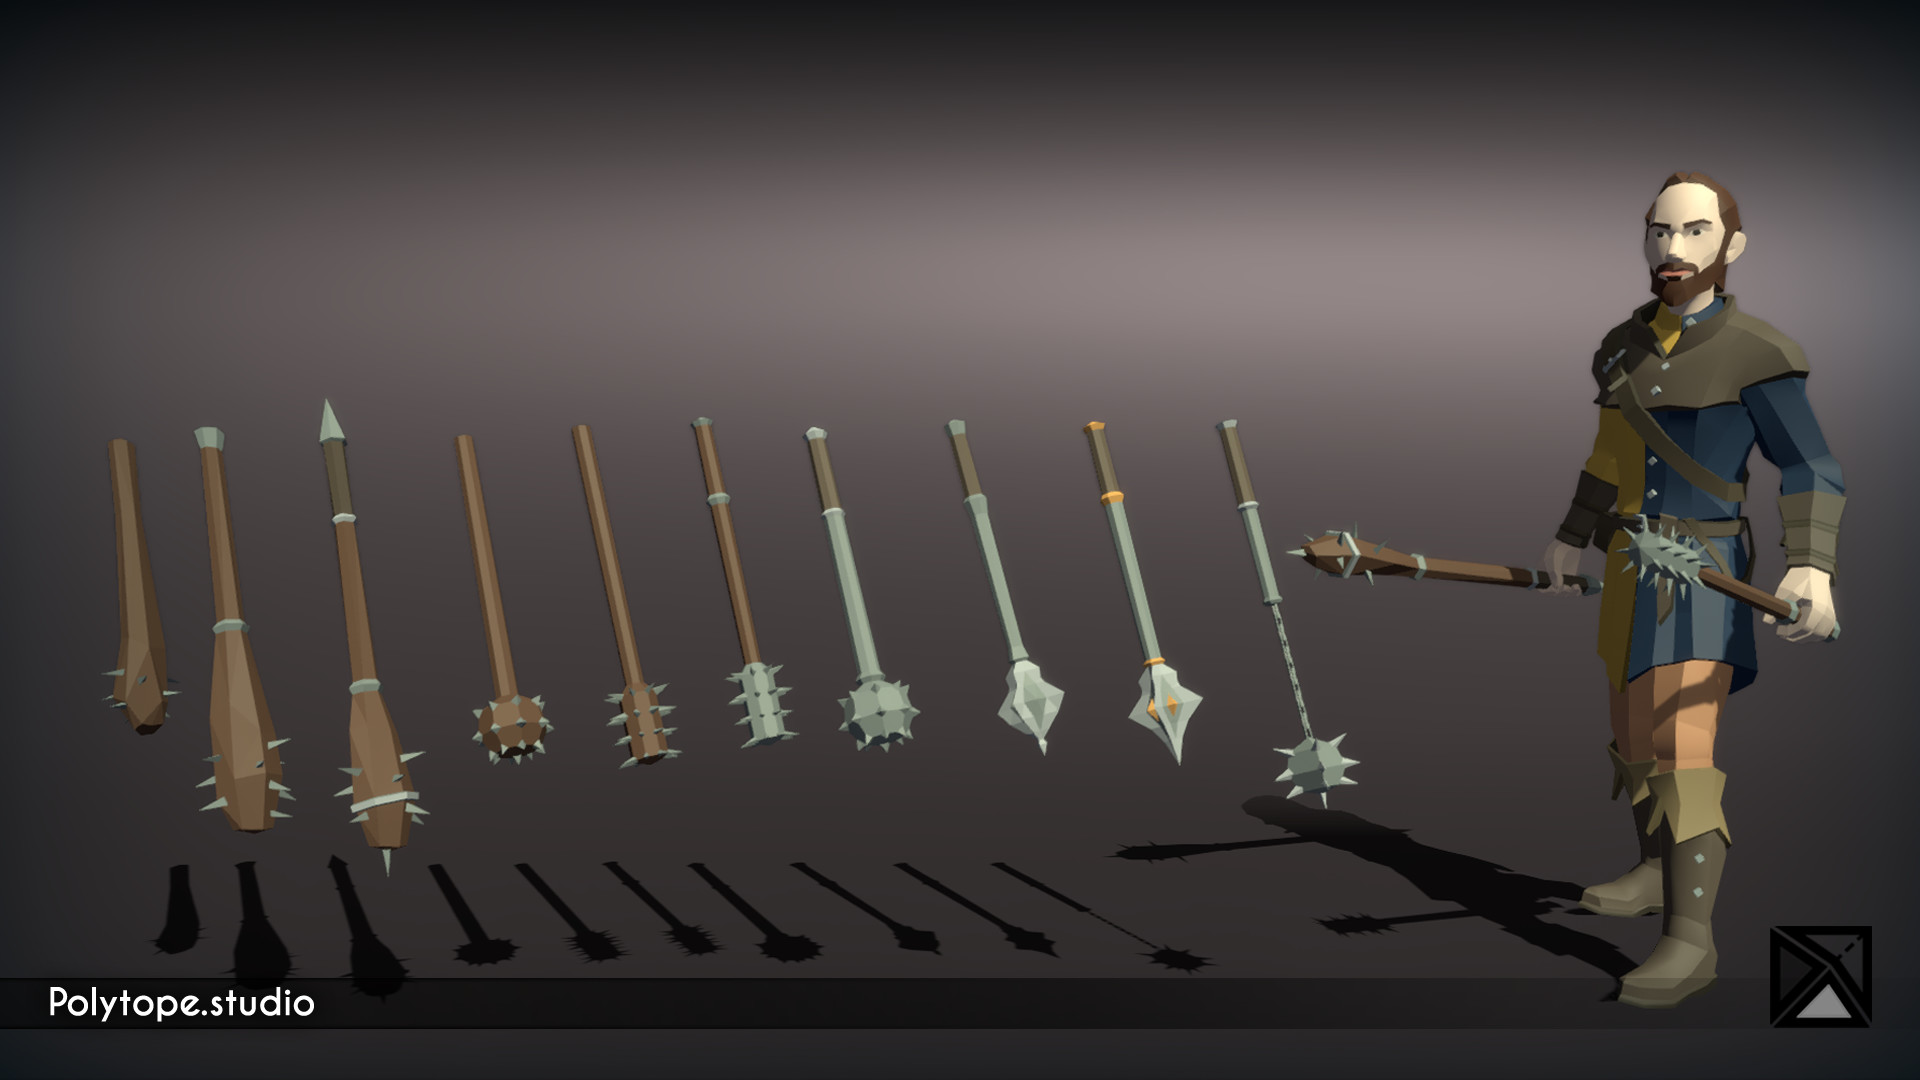 Polytope studio pt medieval lowpoly weapons club mace